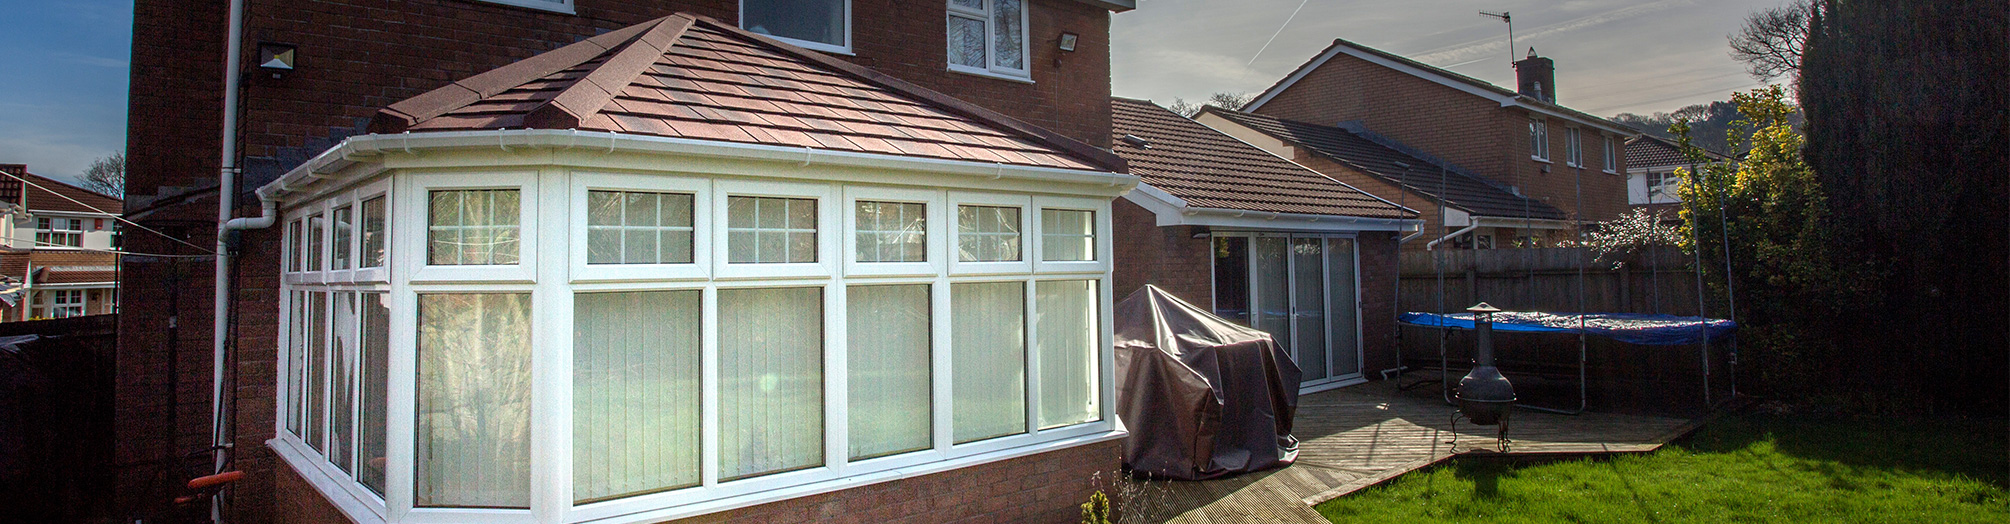 Tiled Roof Conversions header image